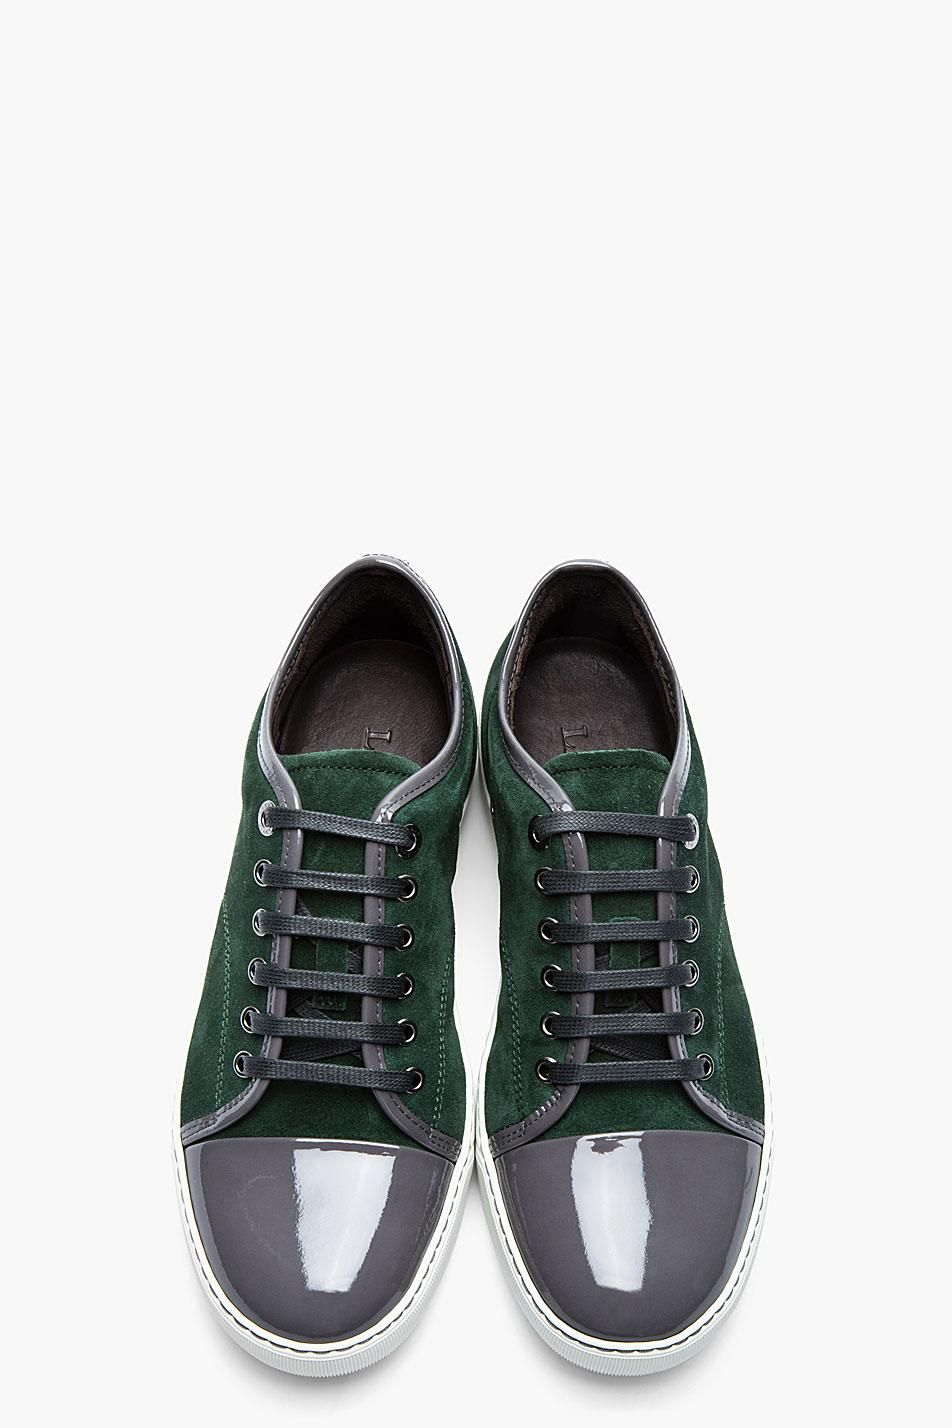 3851a0c5be2c8 Lanvin Forest Green Patent and Suede Tennis Shoes | My Funny ...